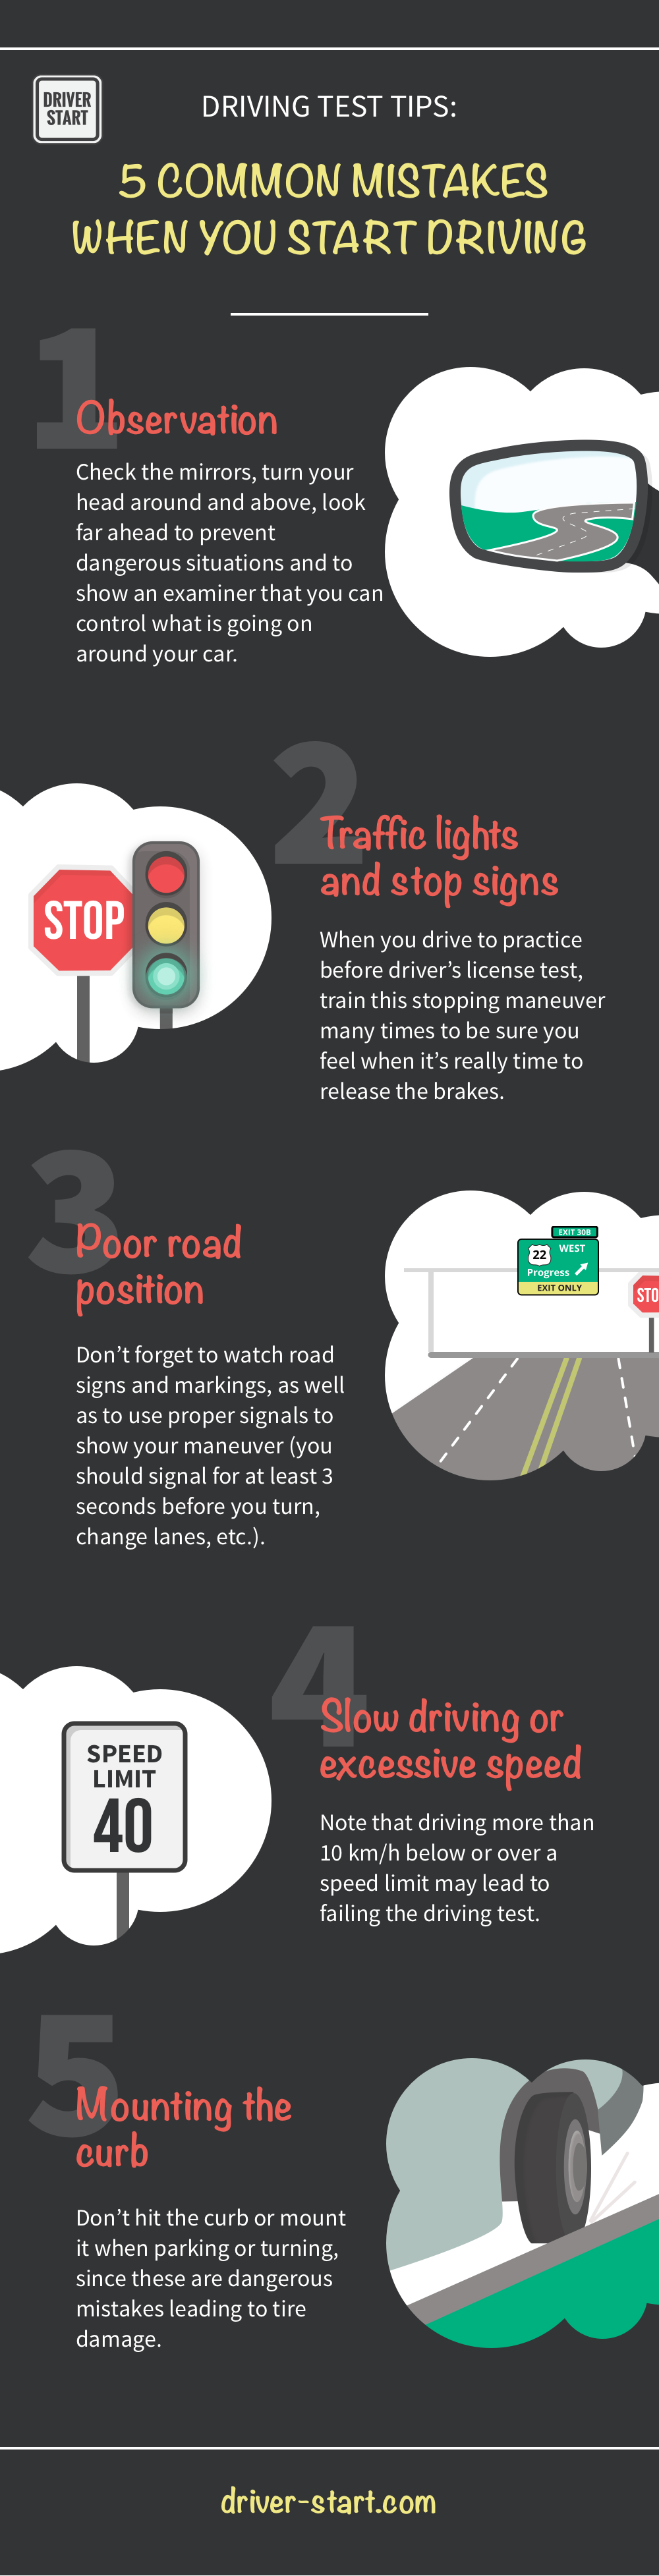 Driving test tips 5 common mistakes when you start